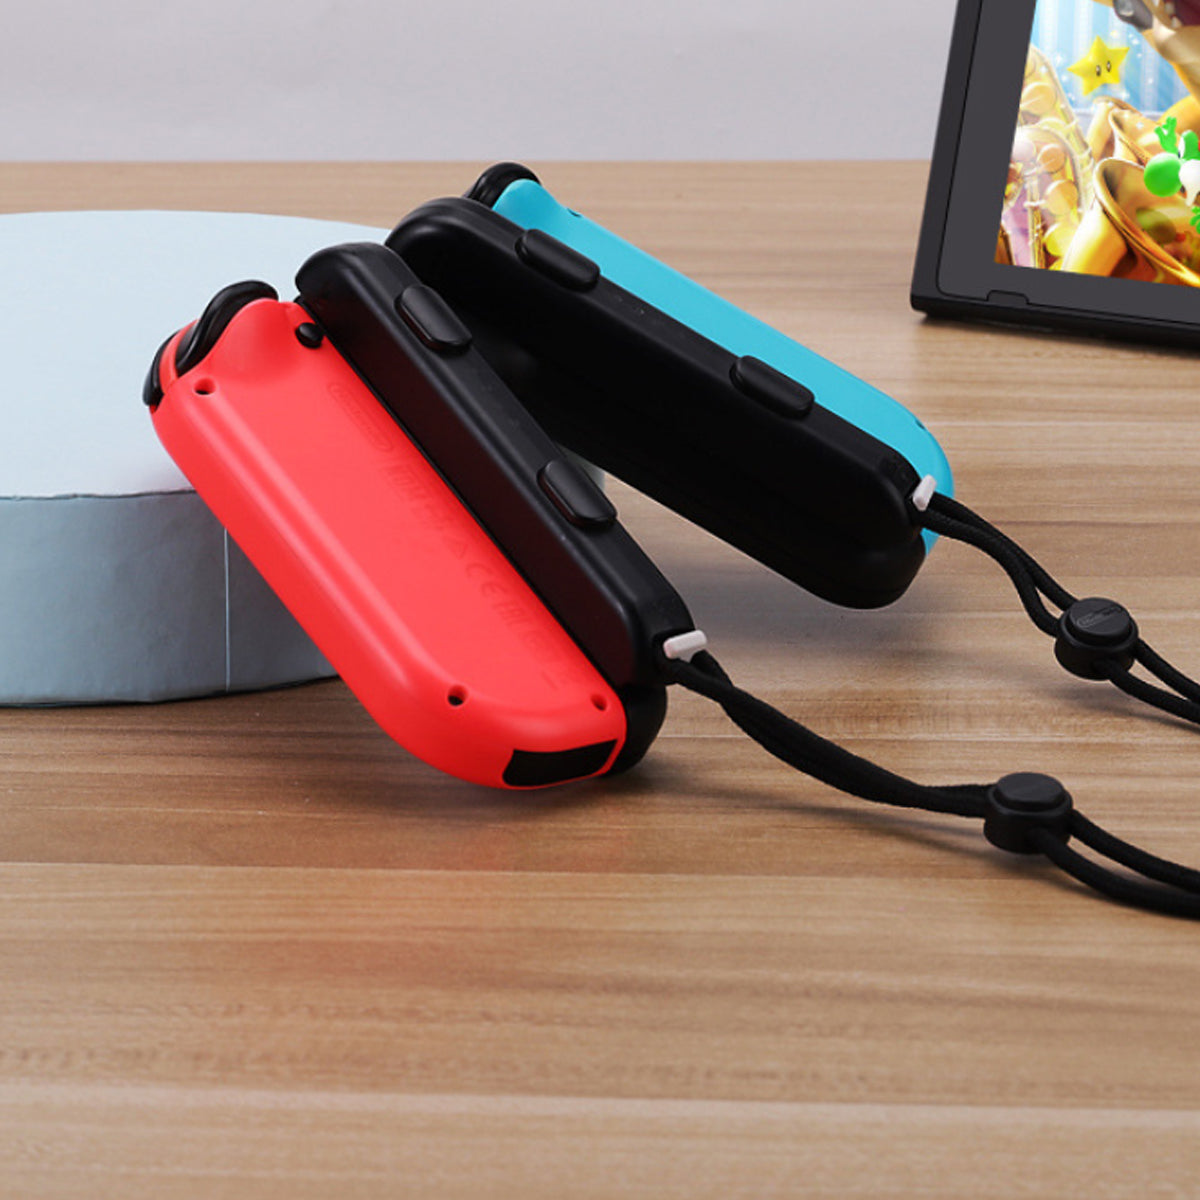 shopify-Red And Blue Switch Game Controller-4